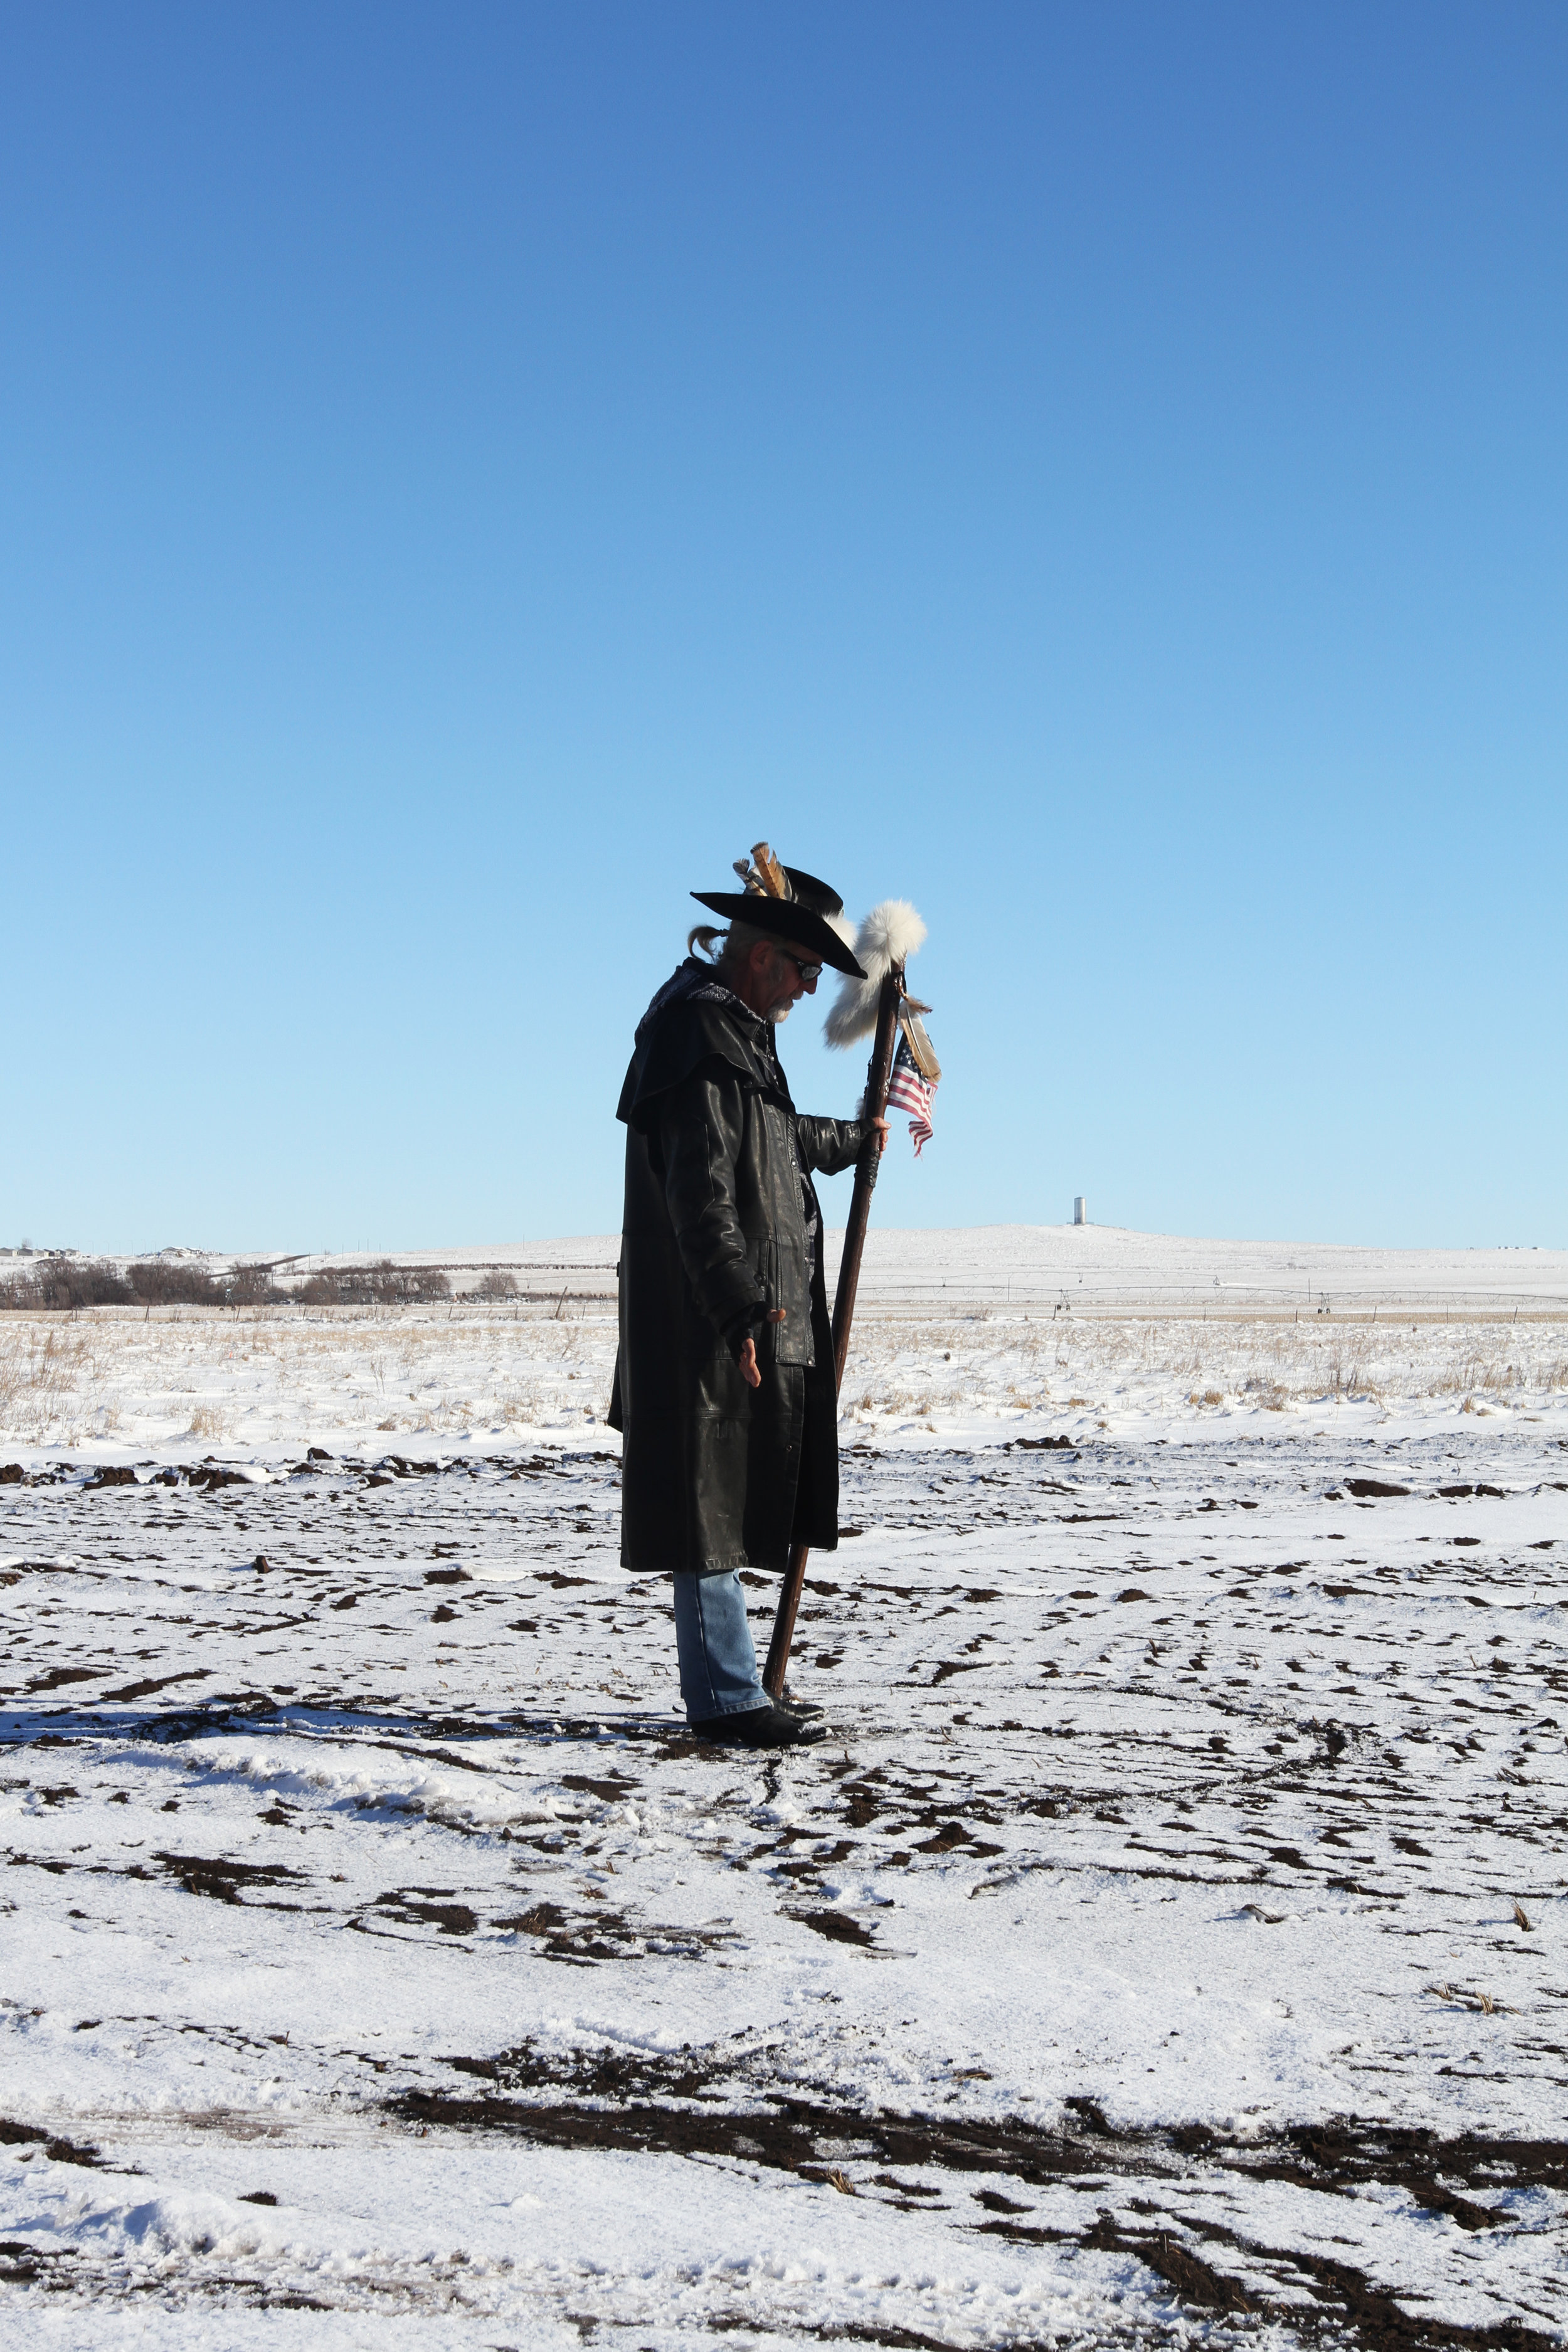 White Fox felt called to lend support to the people of Standing Rock through prayer. His son served two tours in Iraq as a marine. Here he conducts a prayer ritual while veterans, who have also come to support the protest, receive their briefing.